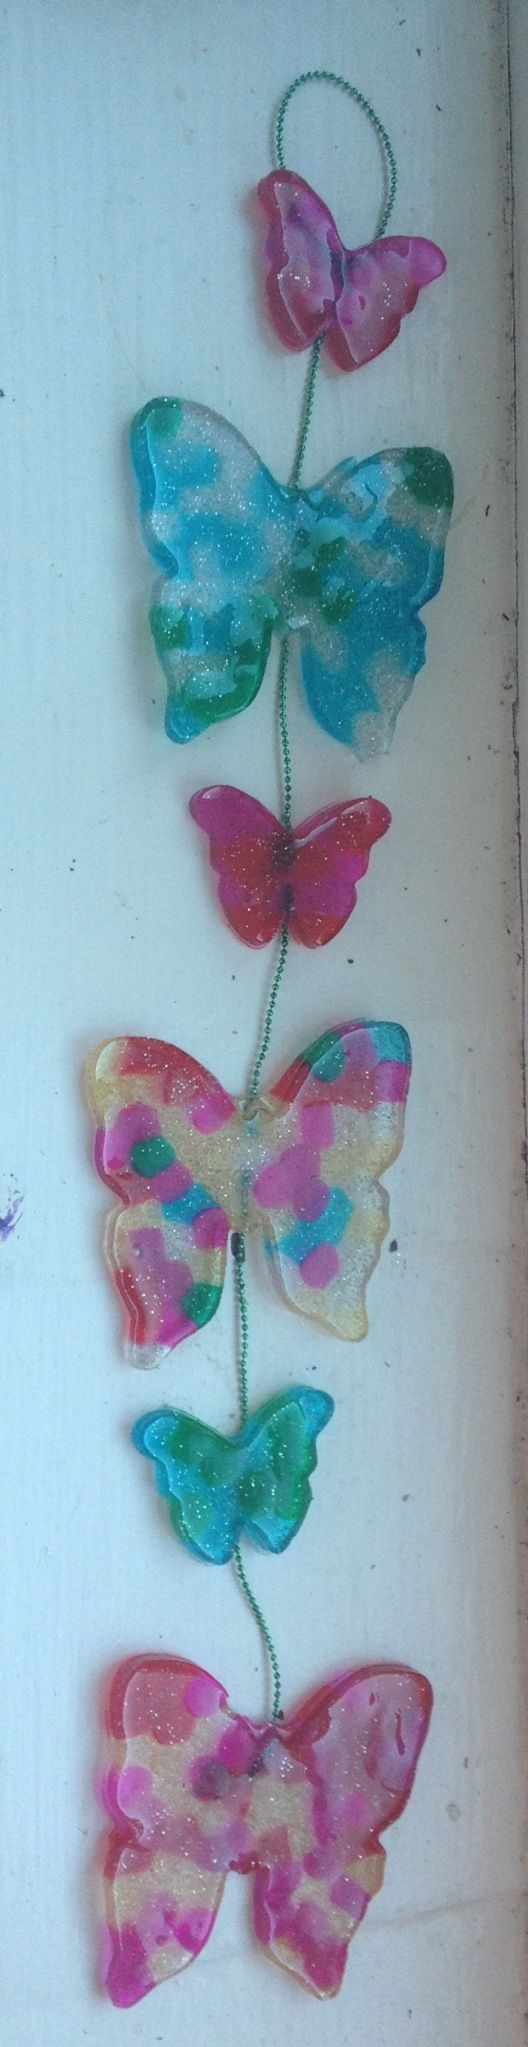 Plastic beads for crafts - Butterfly Melted Beads Sun Catcher Note Glitter Beads Transparent And Pearl Great